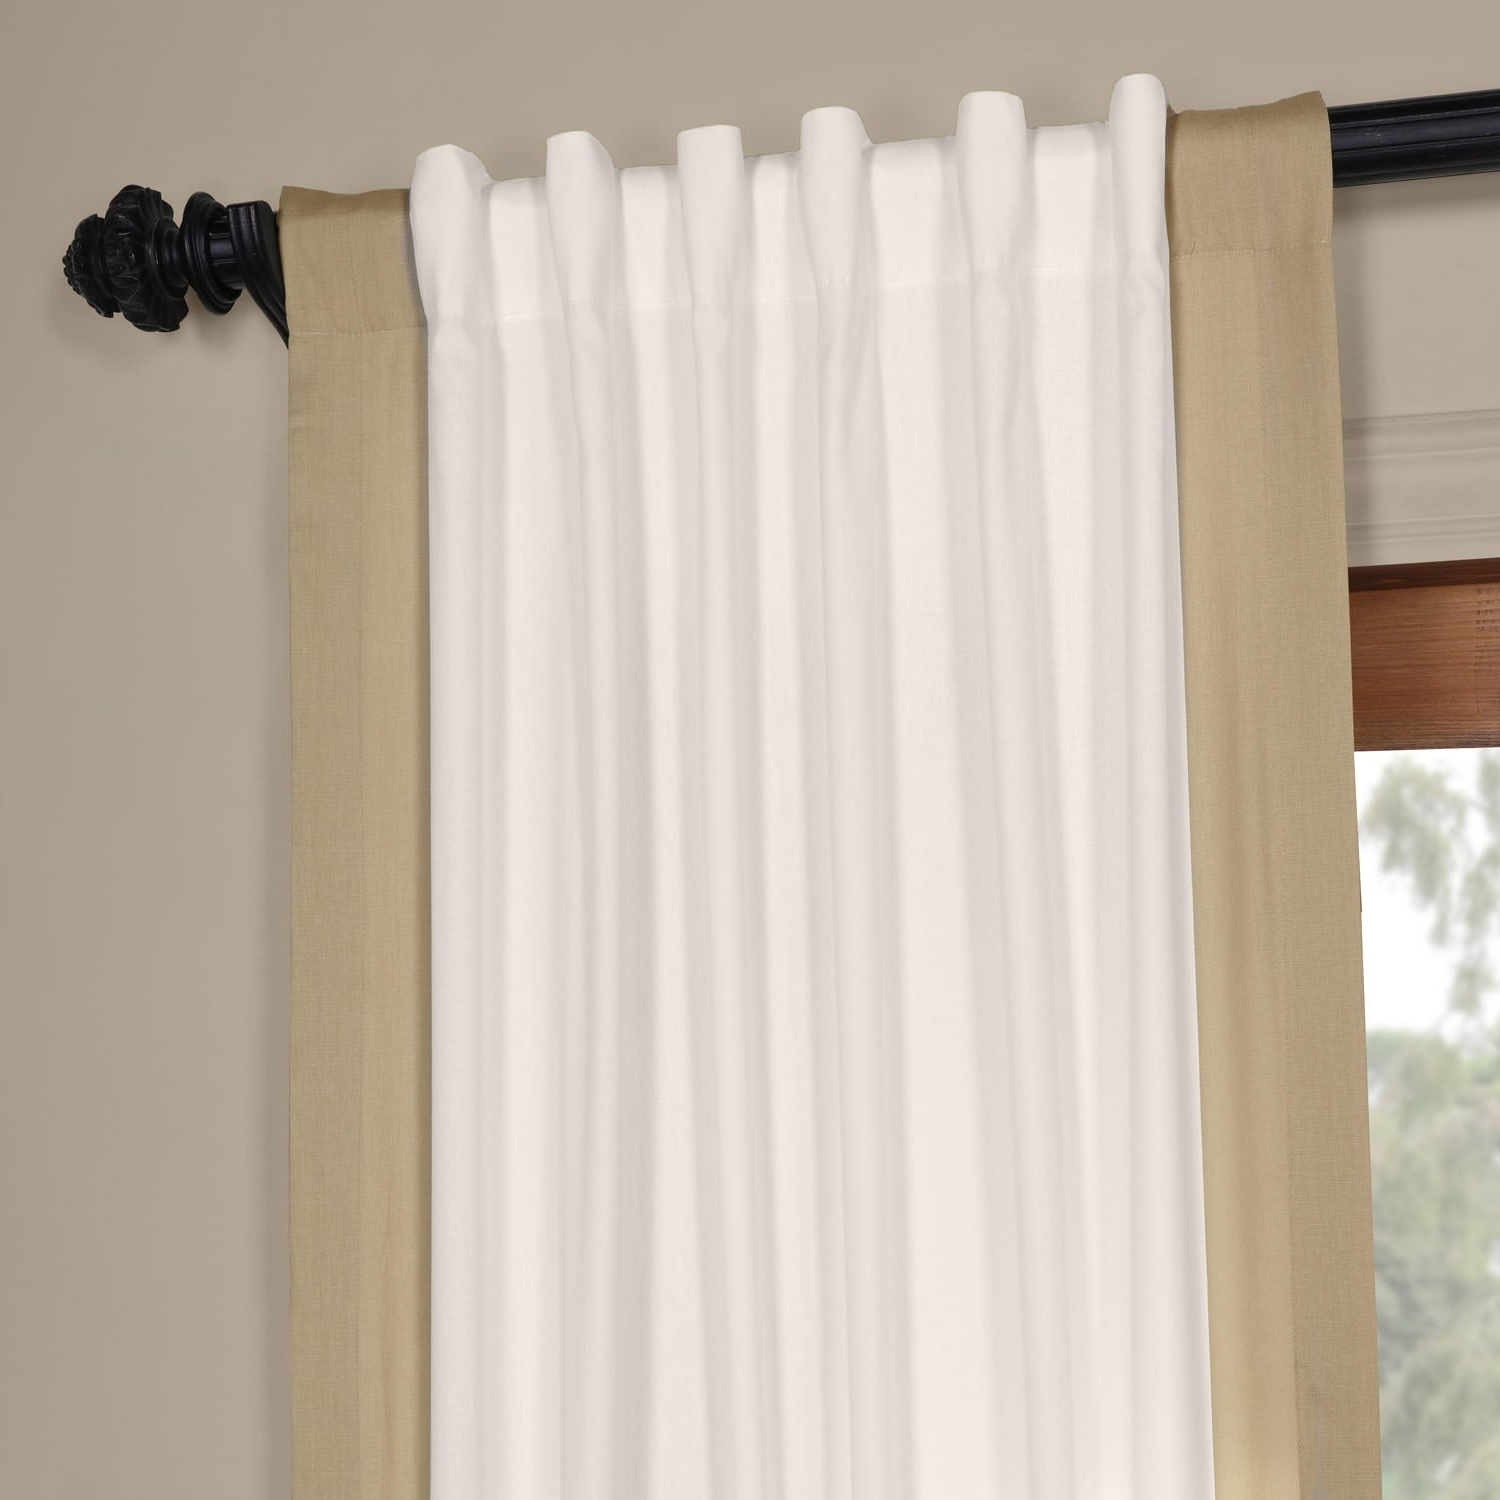 Vertical Colorblock Panama Curtains Inside Current Exclusive Fabrics Vertical Colorblock Panama Curtain (View 6 of 20)